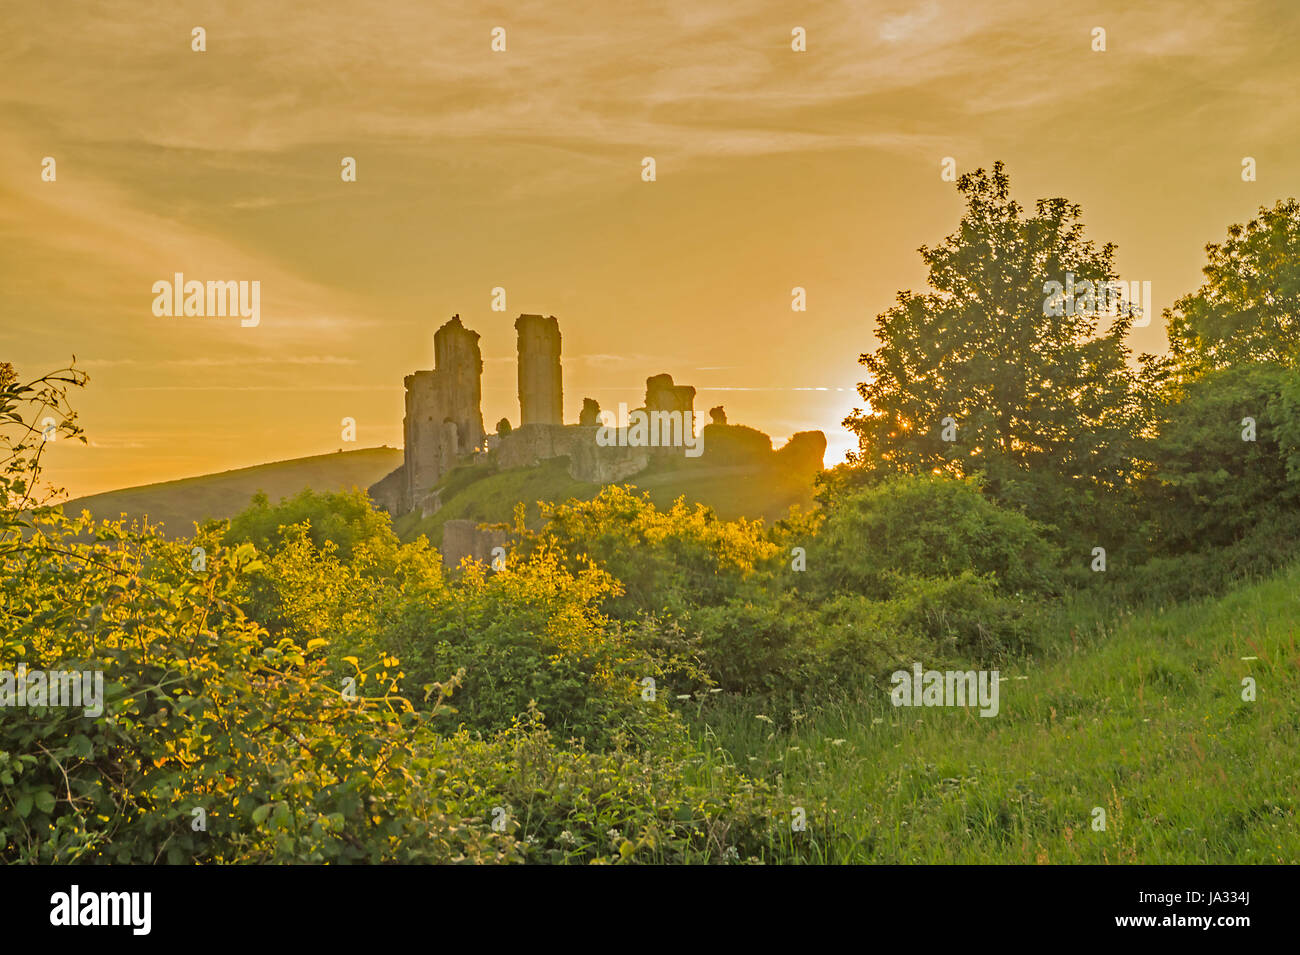 Corfe Castle silhouetted in a golden  Sunset - Stock Image